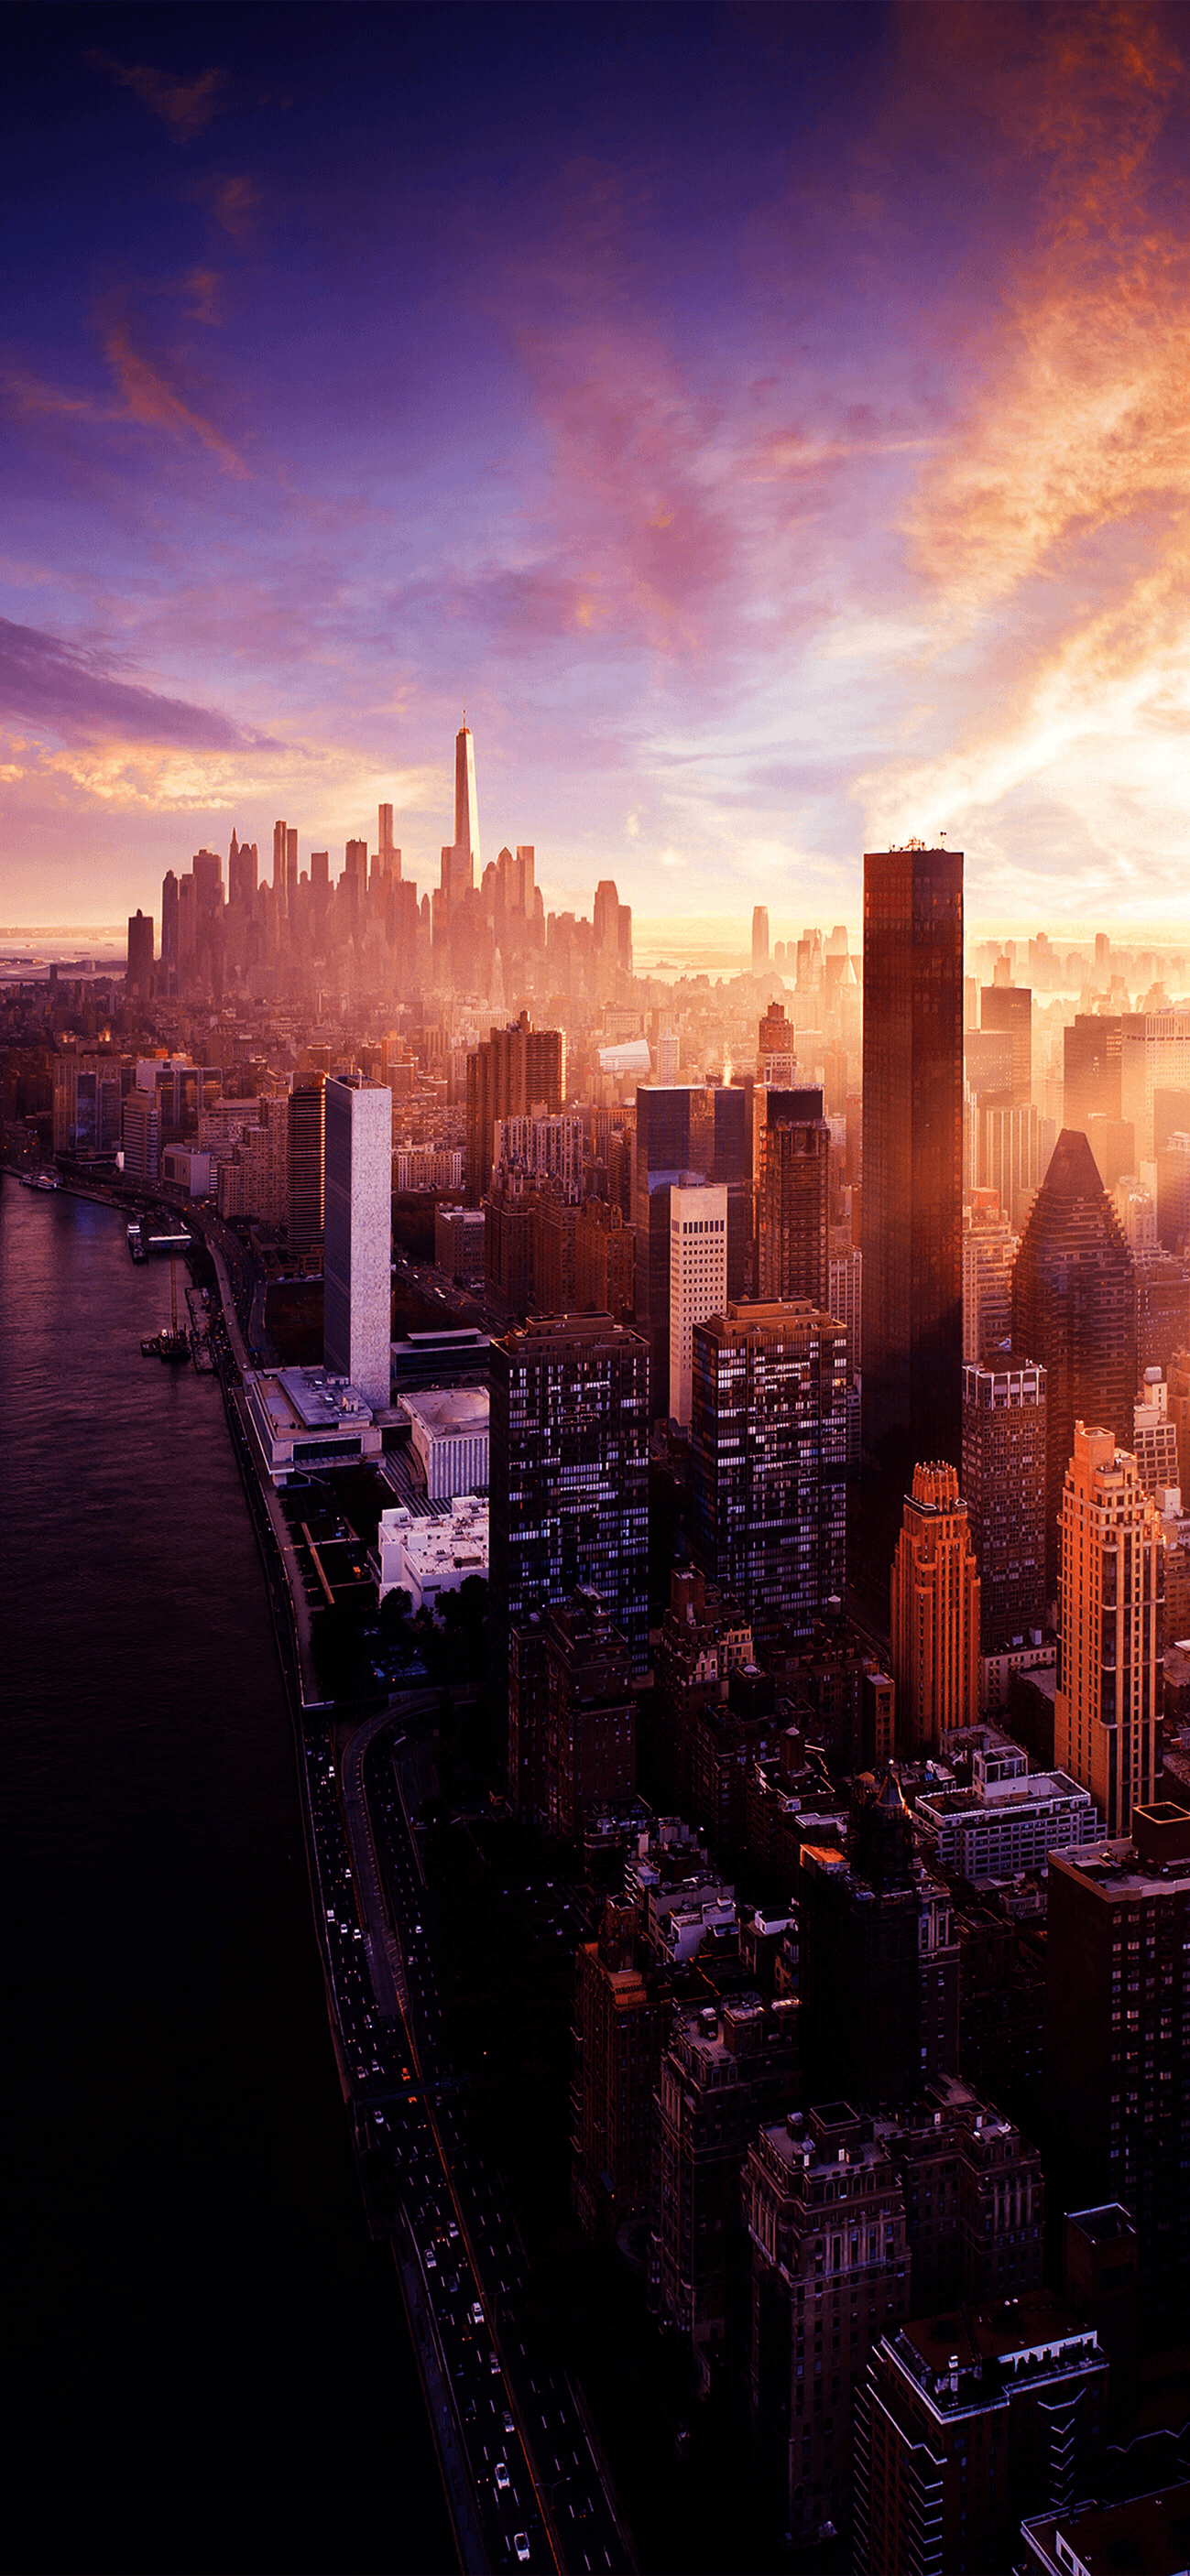 Sunset City Wallpaper Posted By Zoey Peltier